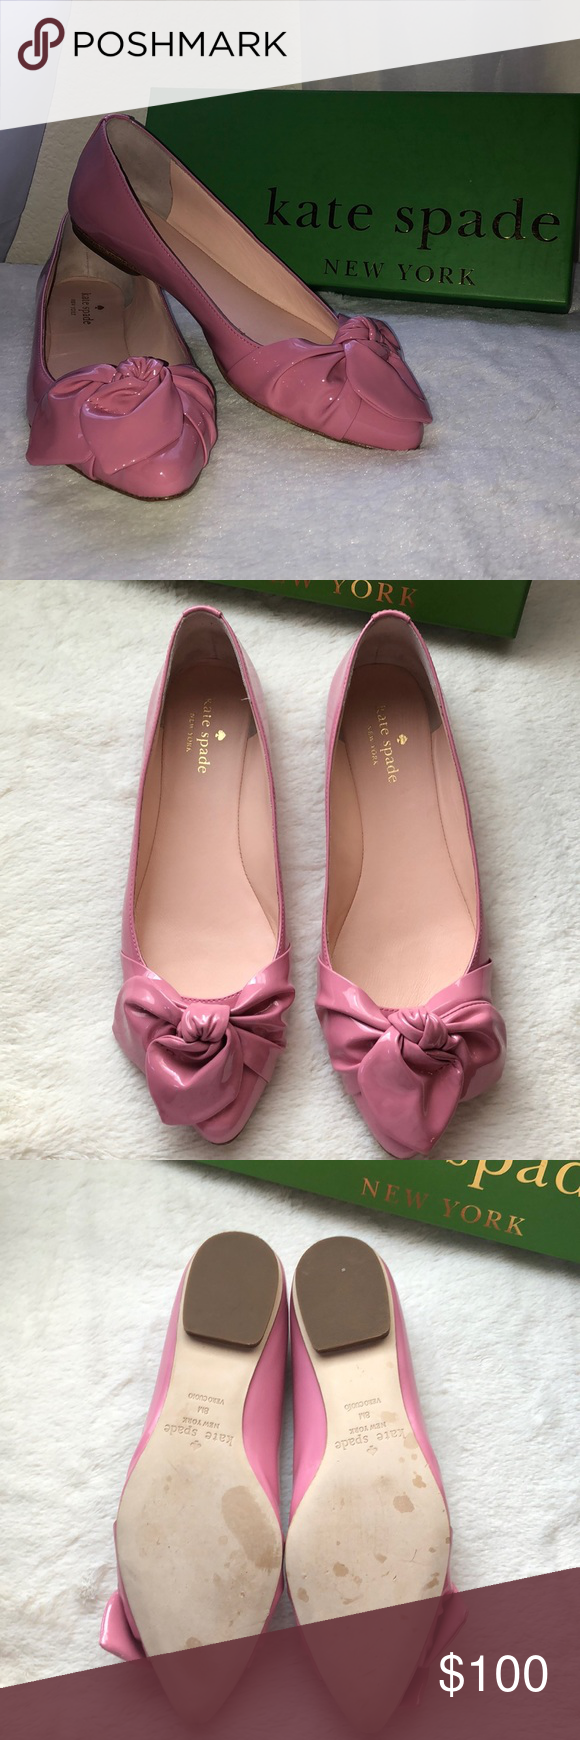 52c0f37870e4 Kate Spade Nancy Flats sz 8 Adorable Parisian Pink patent flats with bow on  toe! Brand new with box! kate spade Shoes Flats   Loafers